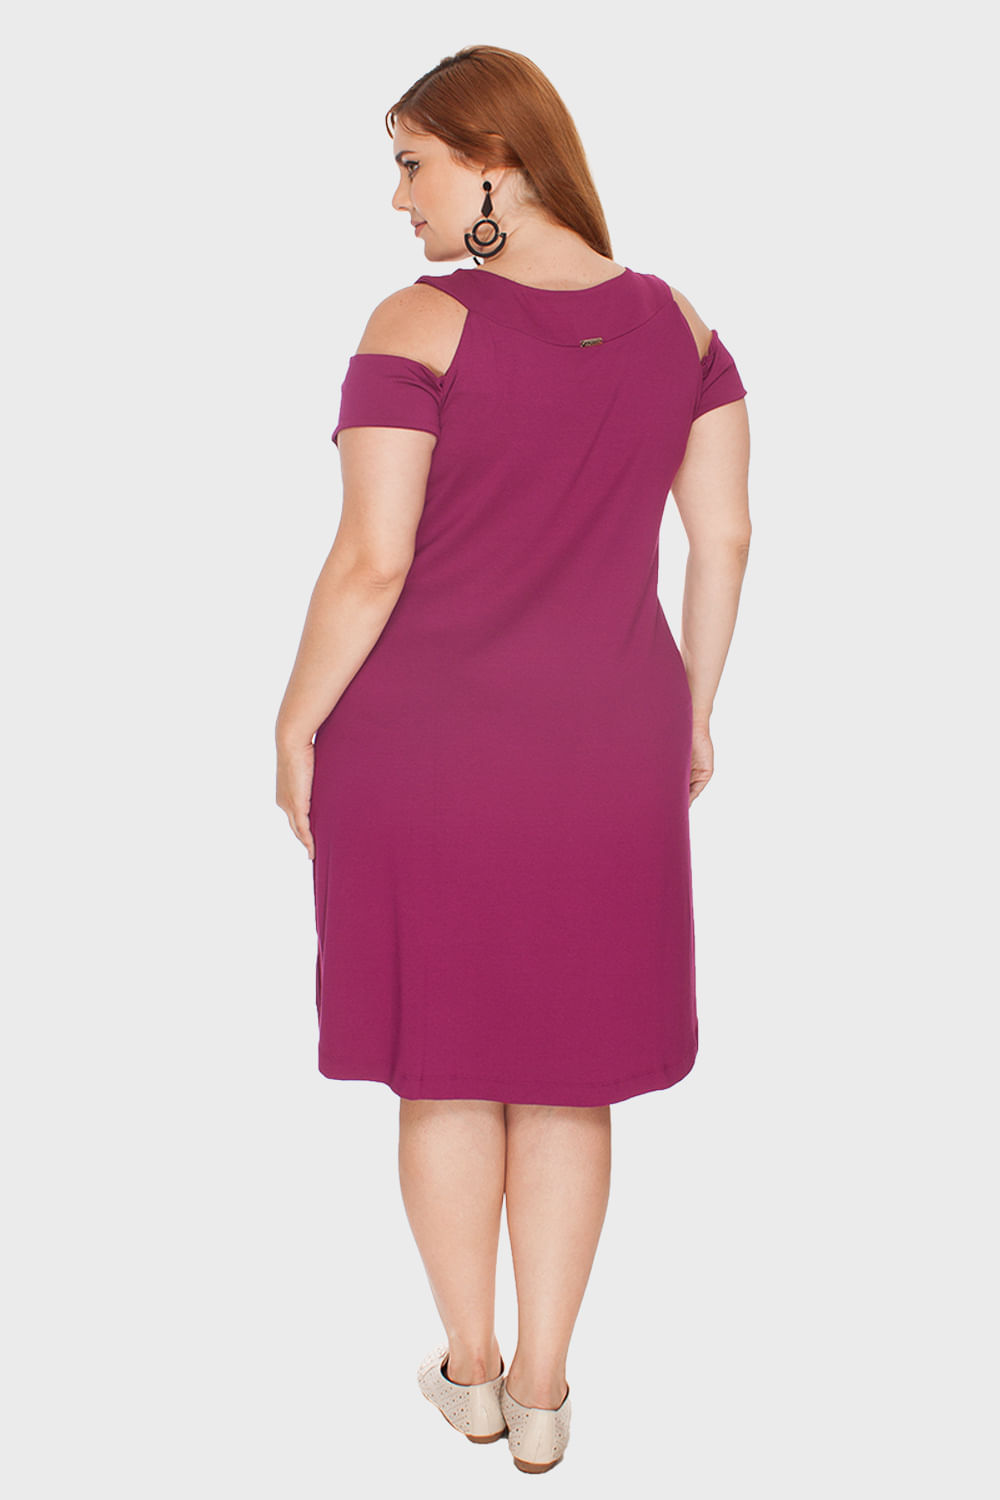 Vestido-Rock-Plus-Size_T1